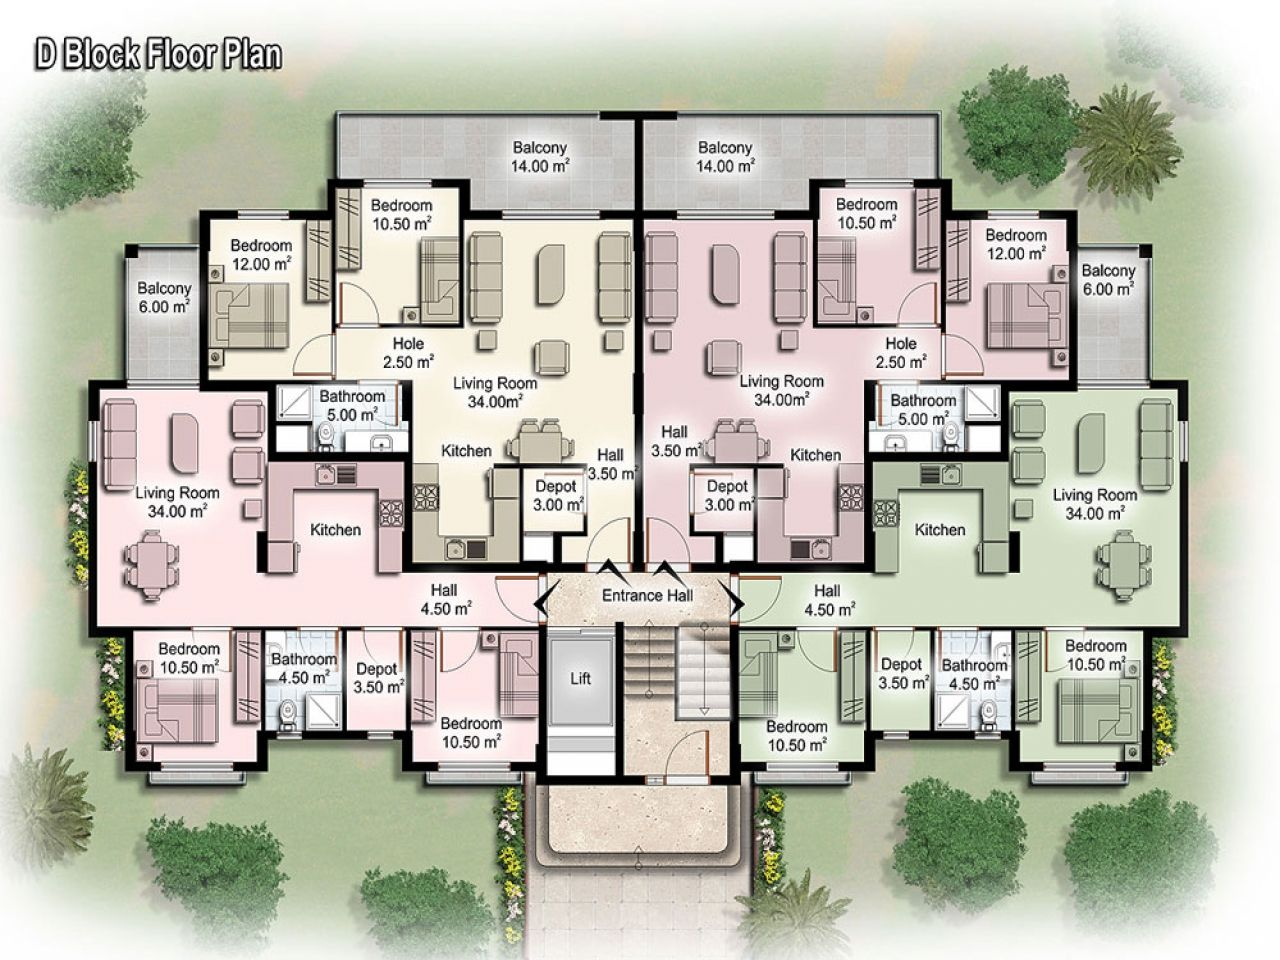 Icymi Home Design Software Building Blocks Free Download Rose Ctg Apts In 2019 Apartment Floor Plans Modern Floor Plans Apartment Plans